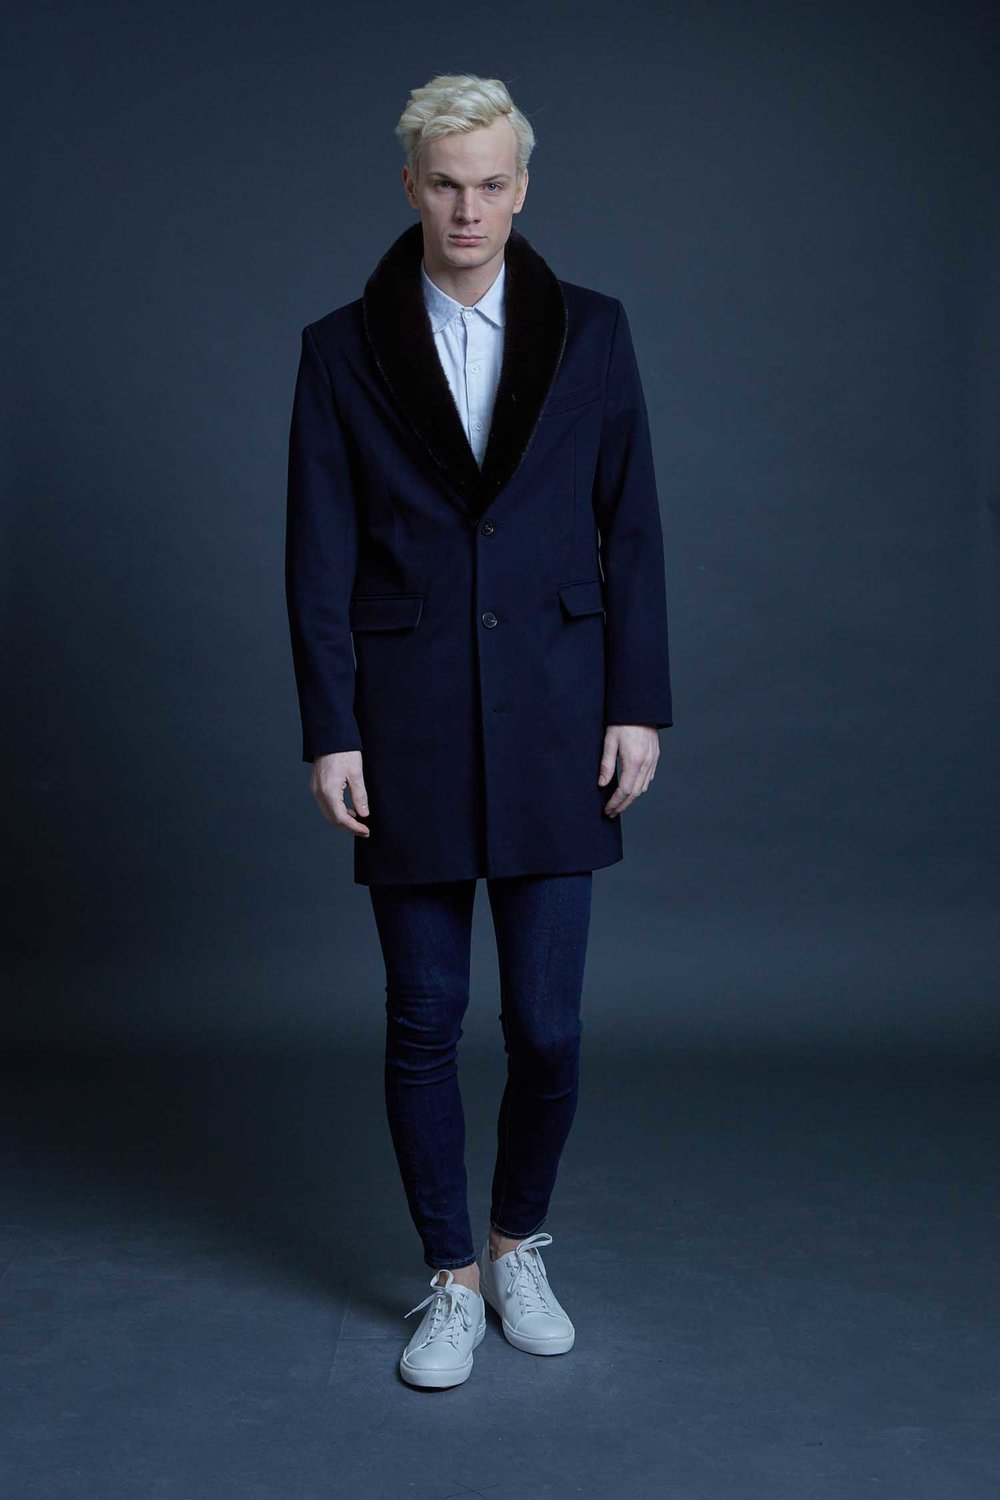 pat-flesher-furs-coat-blue-collar-black-men.jpg